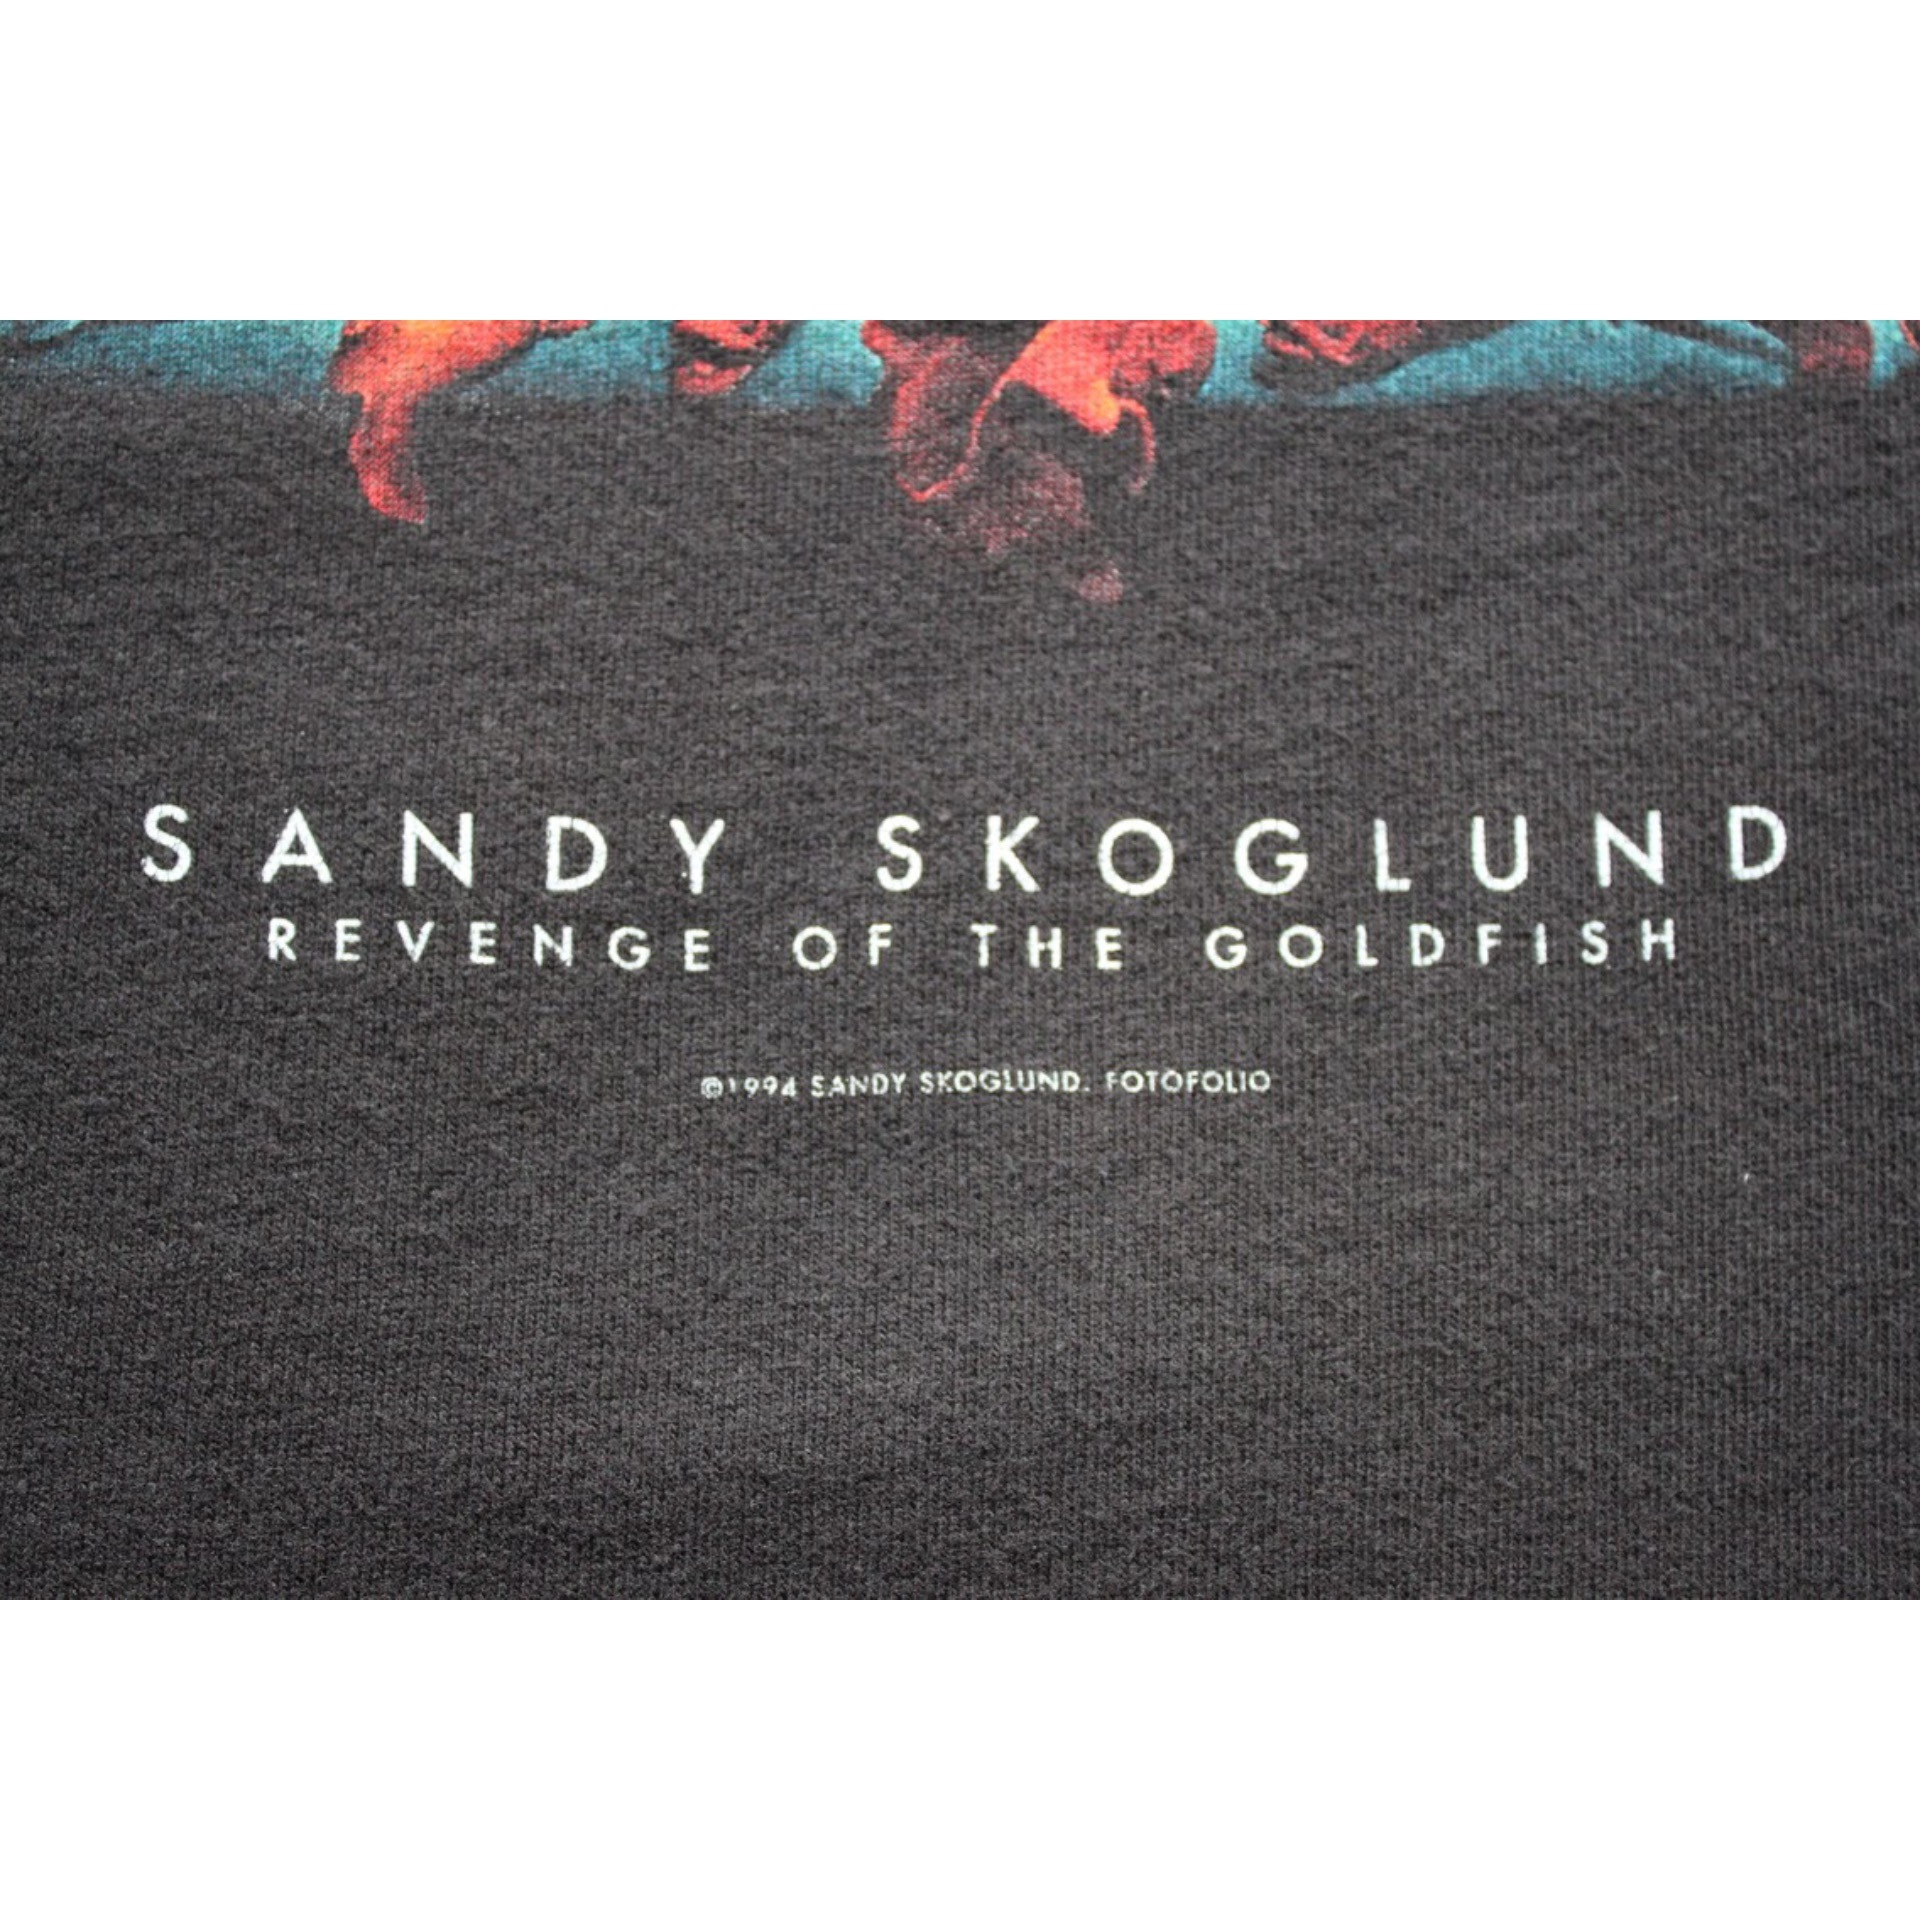 Vintage art t shirt by Sandy Skoglund